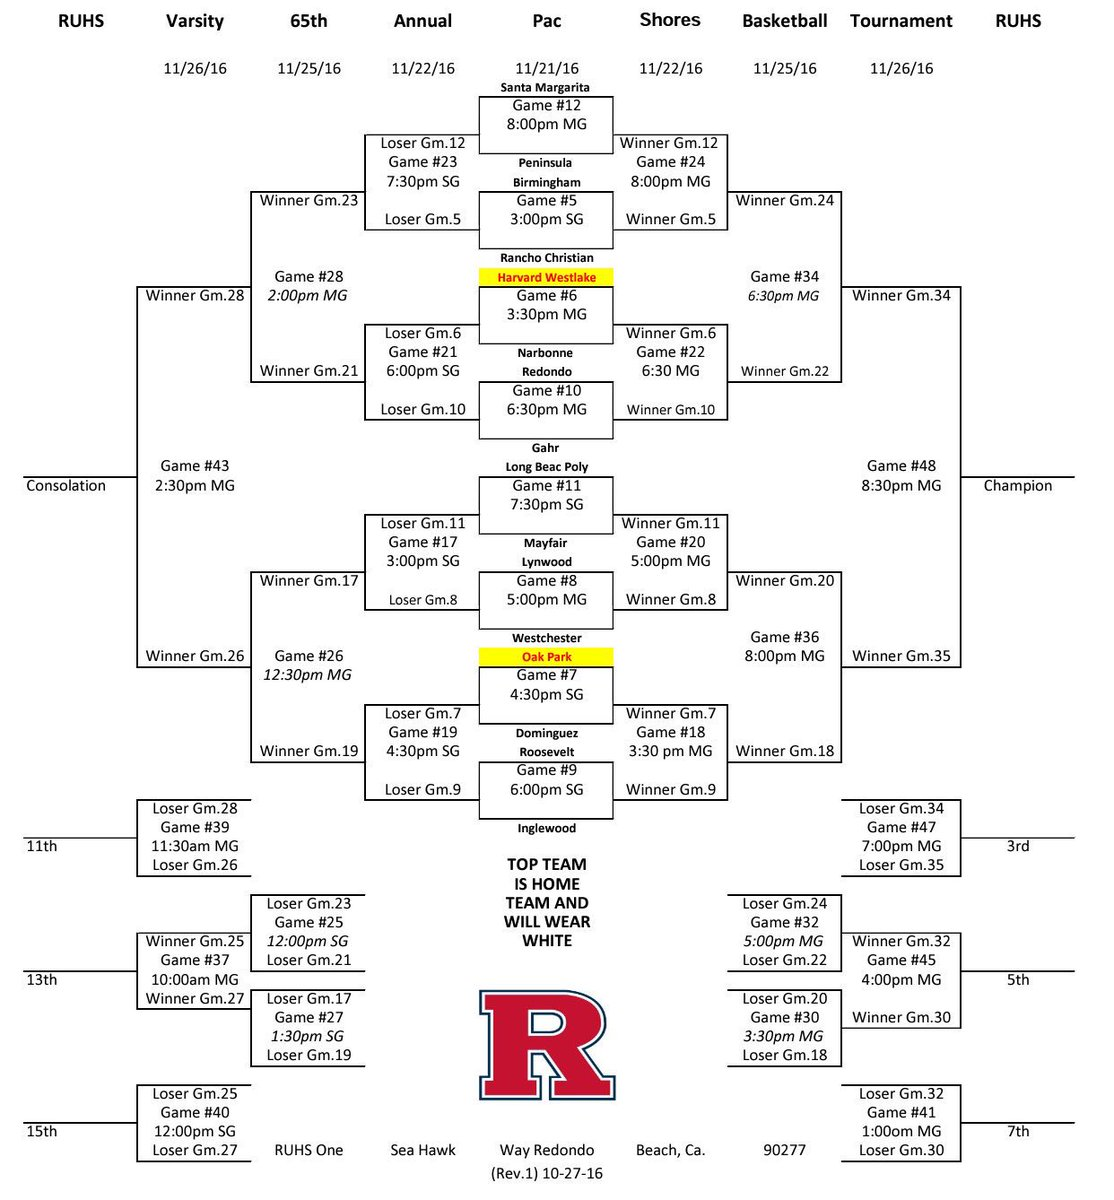 Ryse Willams Pac Shores Tourney on Twitter: